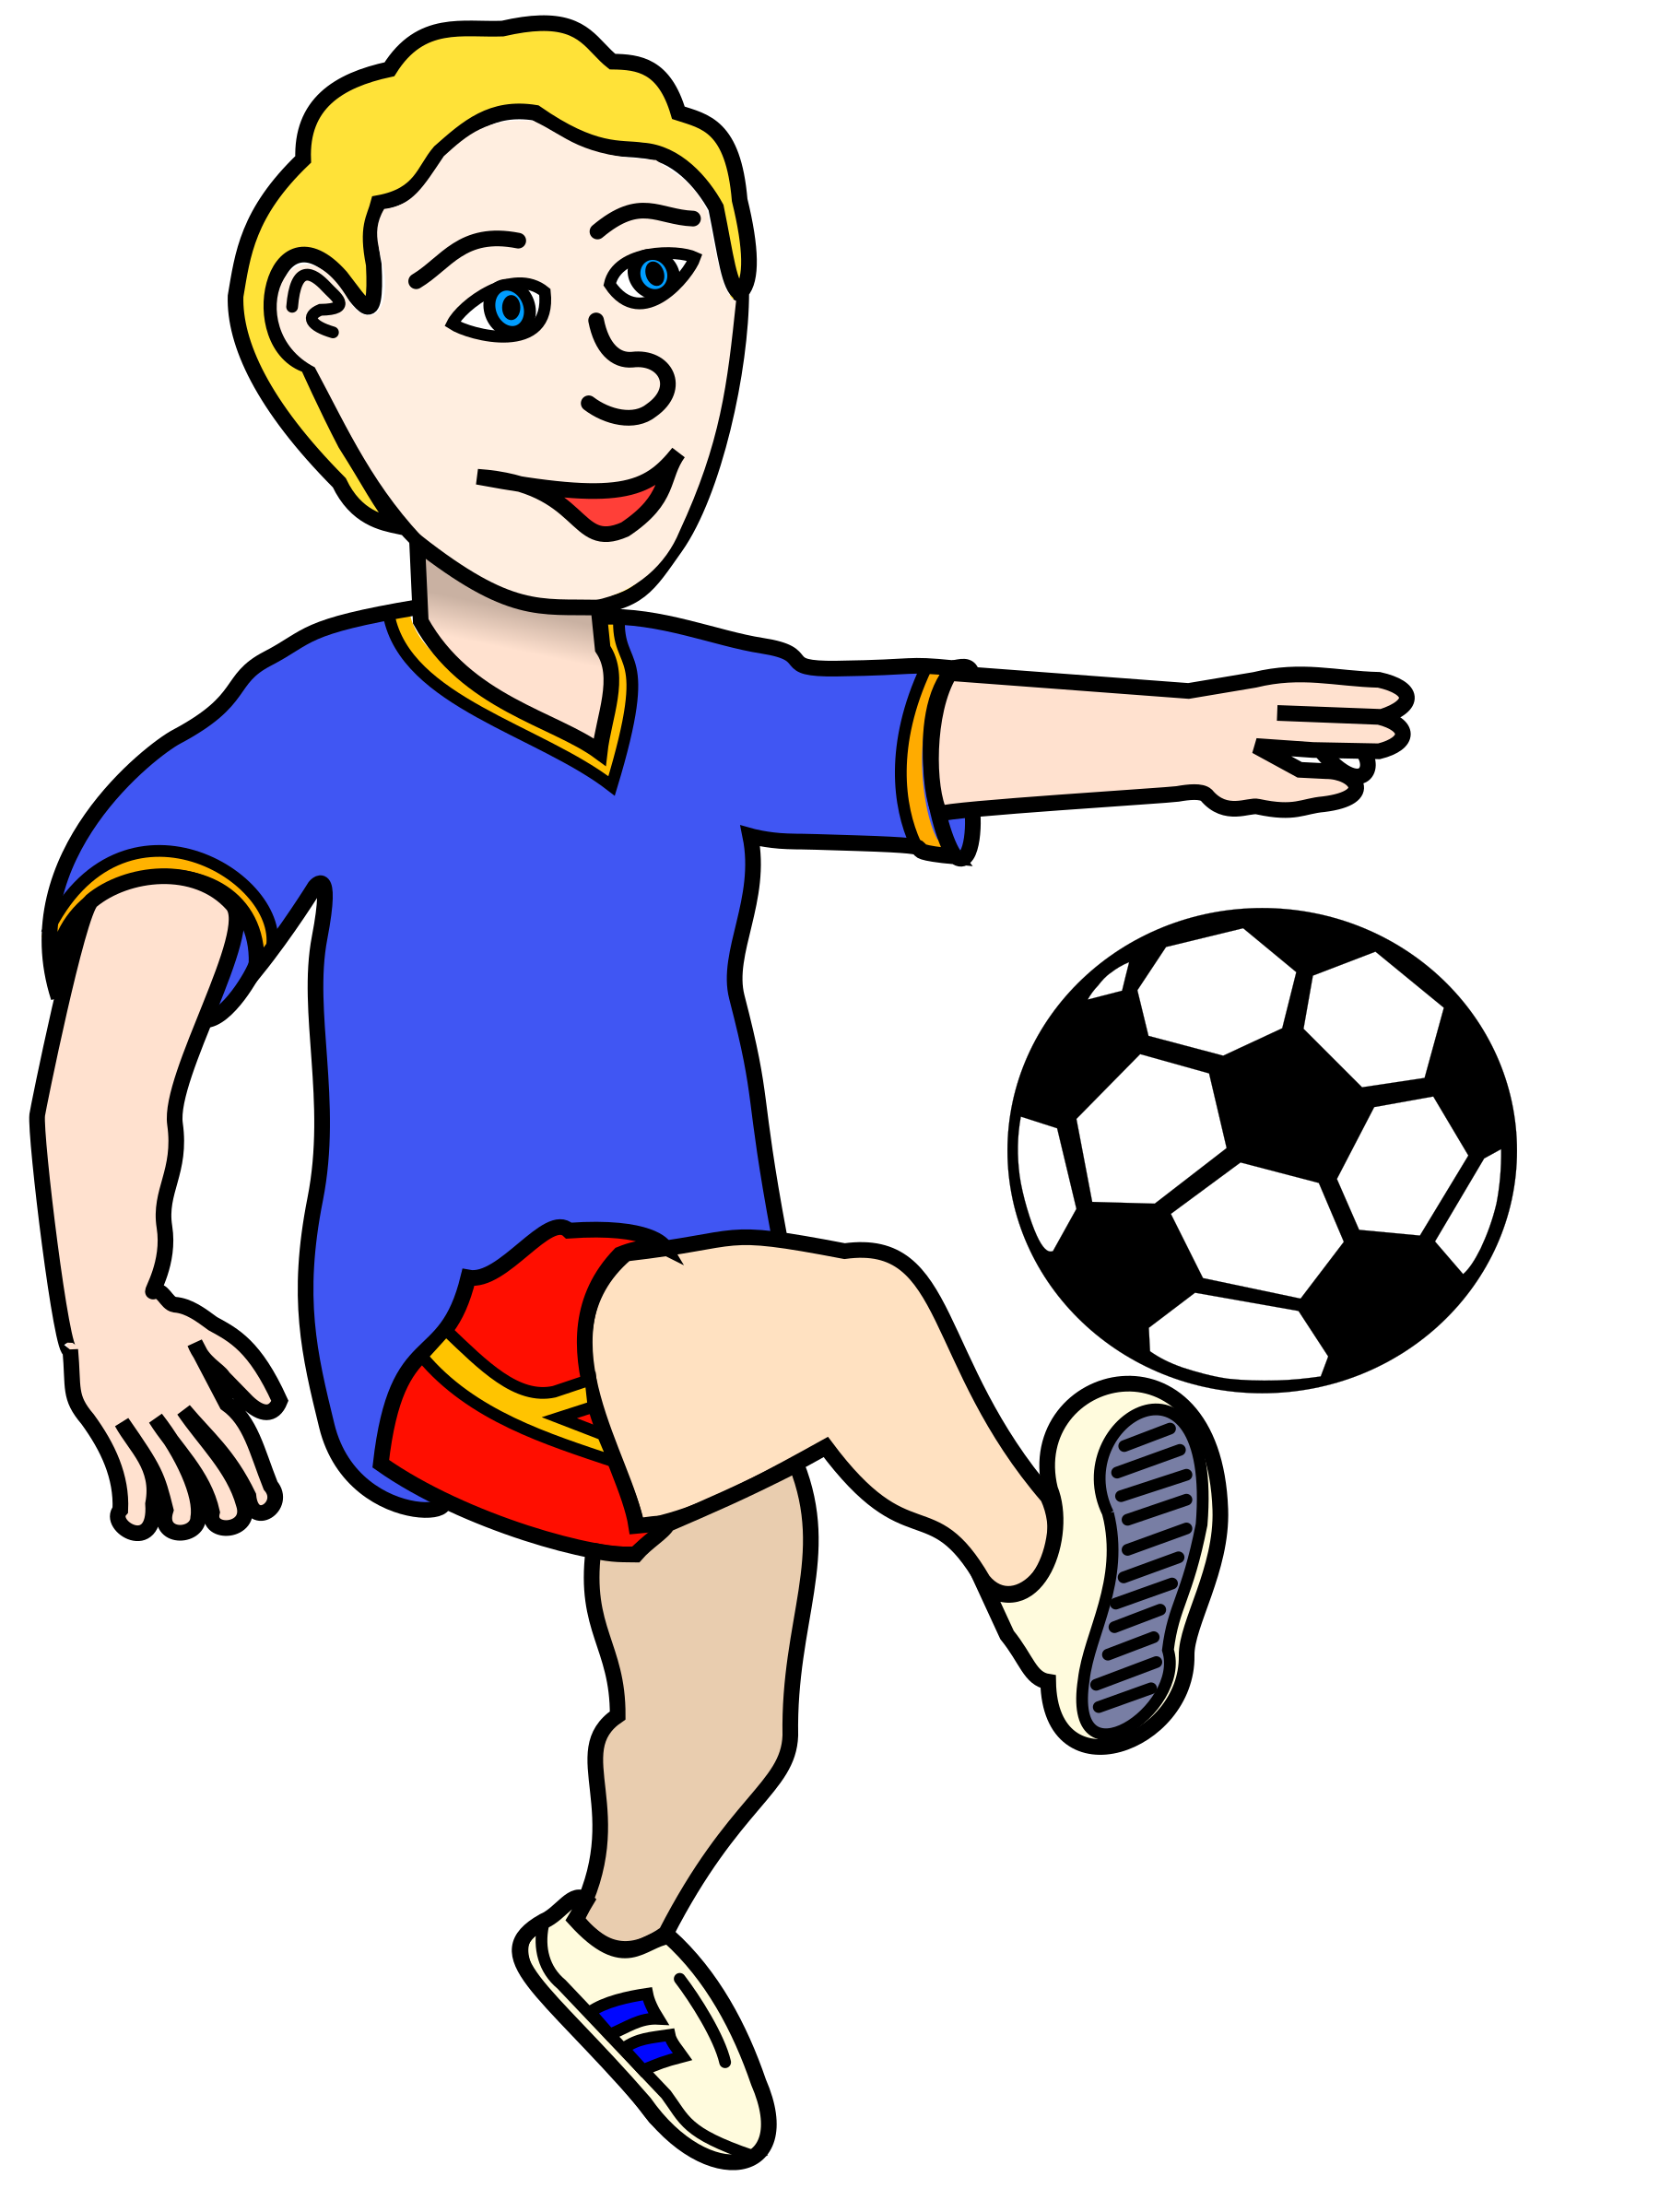 Football clipart baby. Soccer playing boy coloured